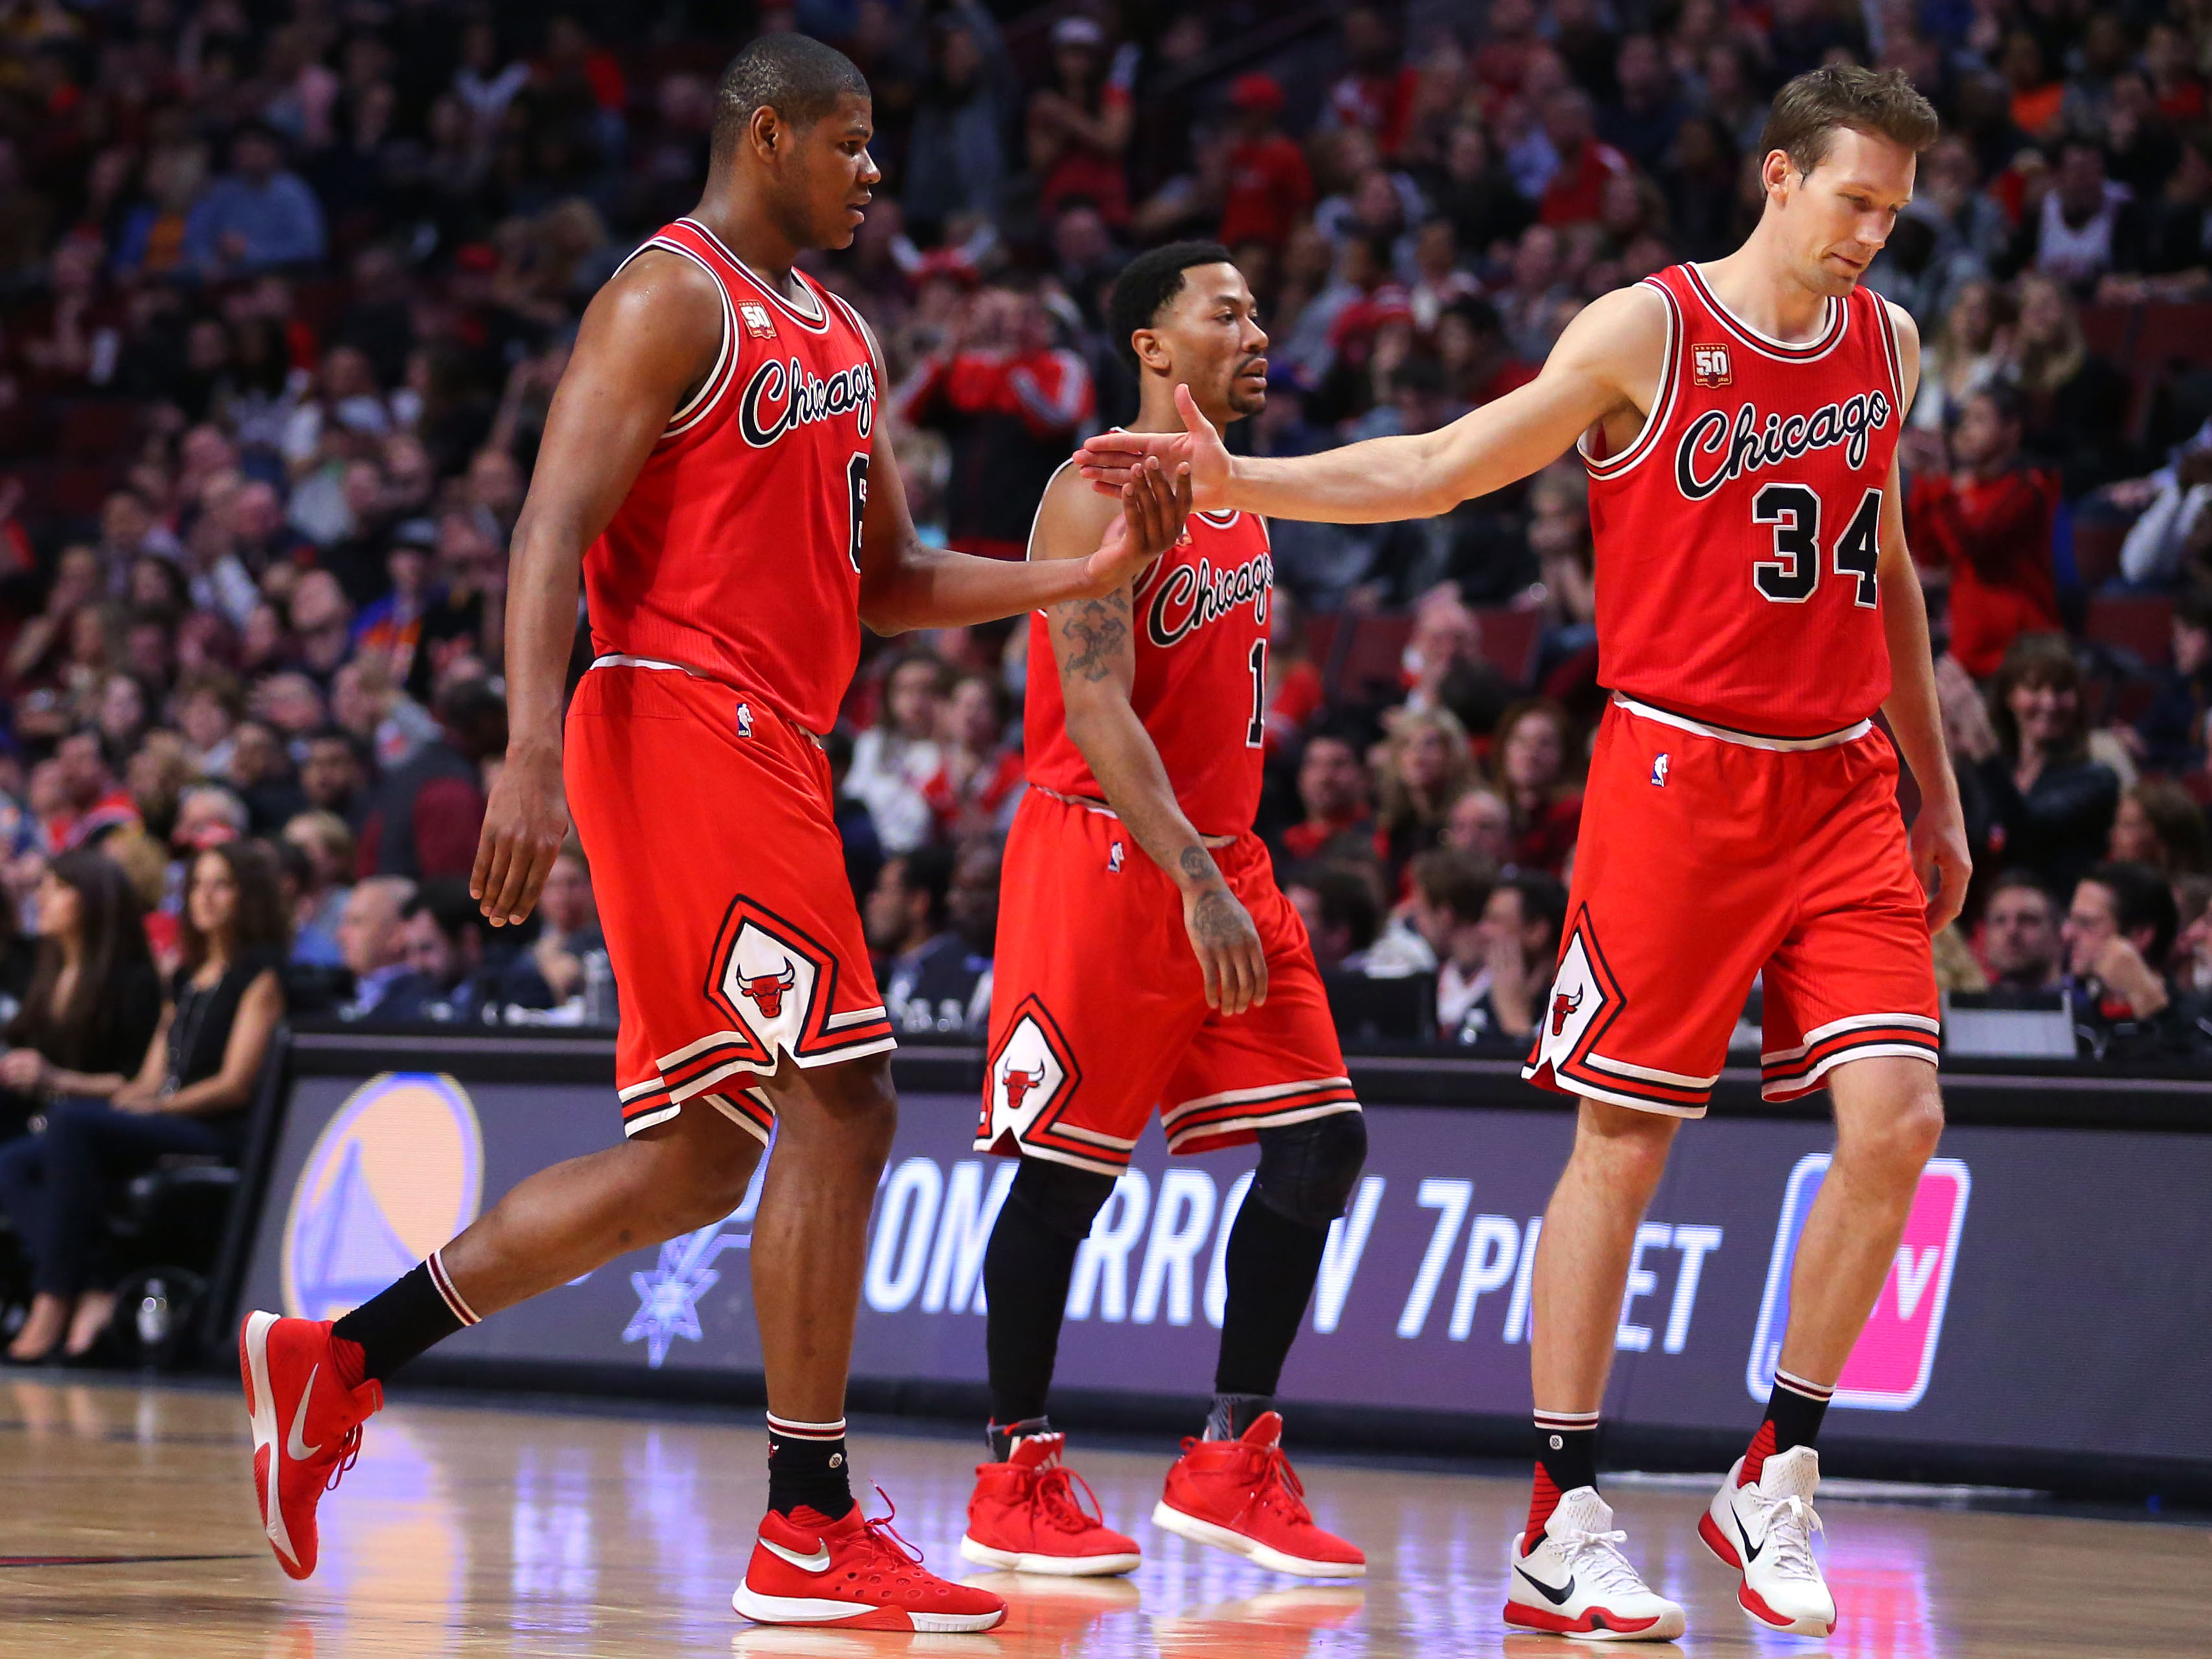 NBA scores 2016: The Bulls won, but it's probably too little, too late